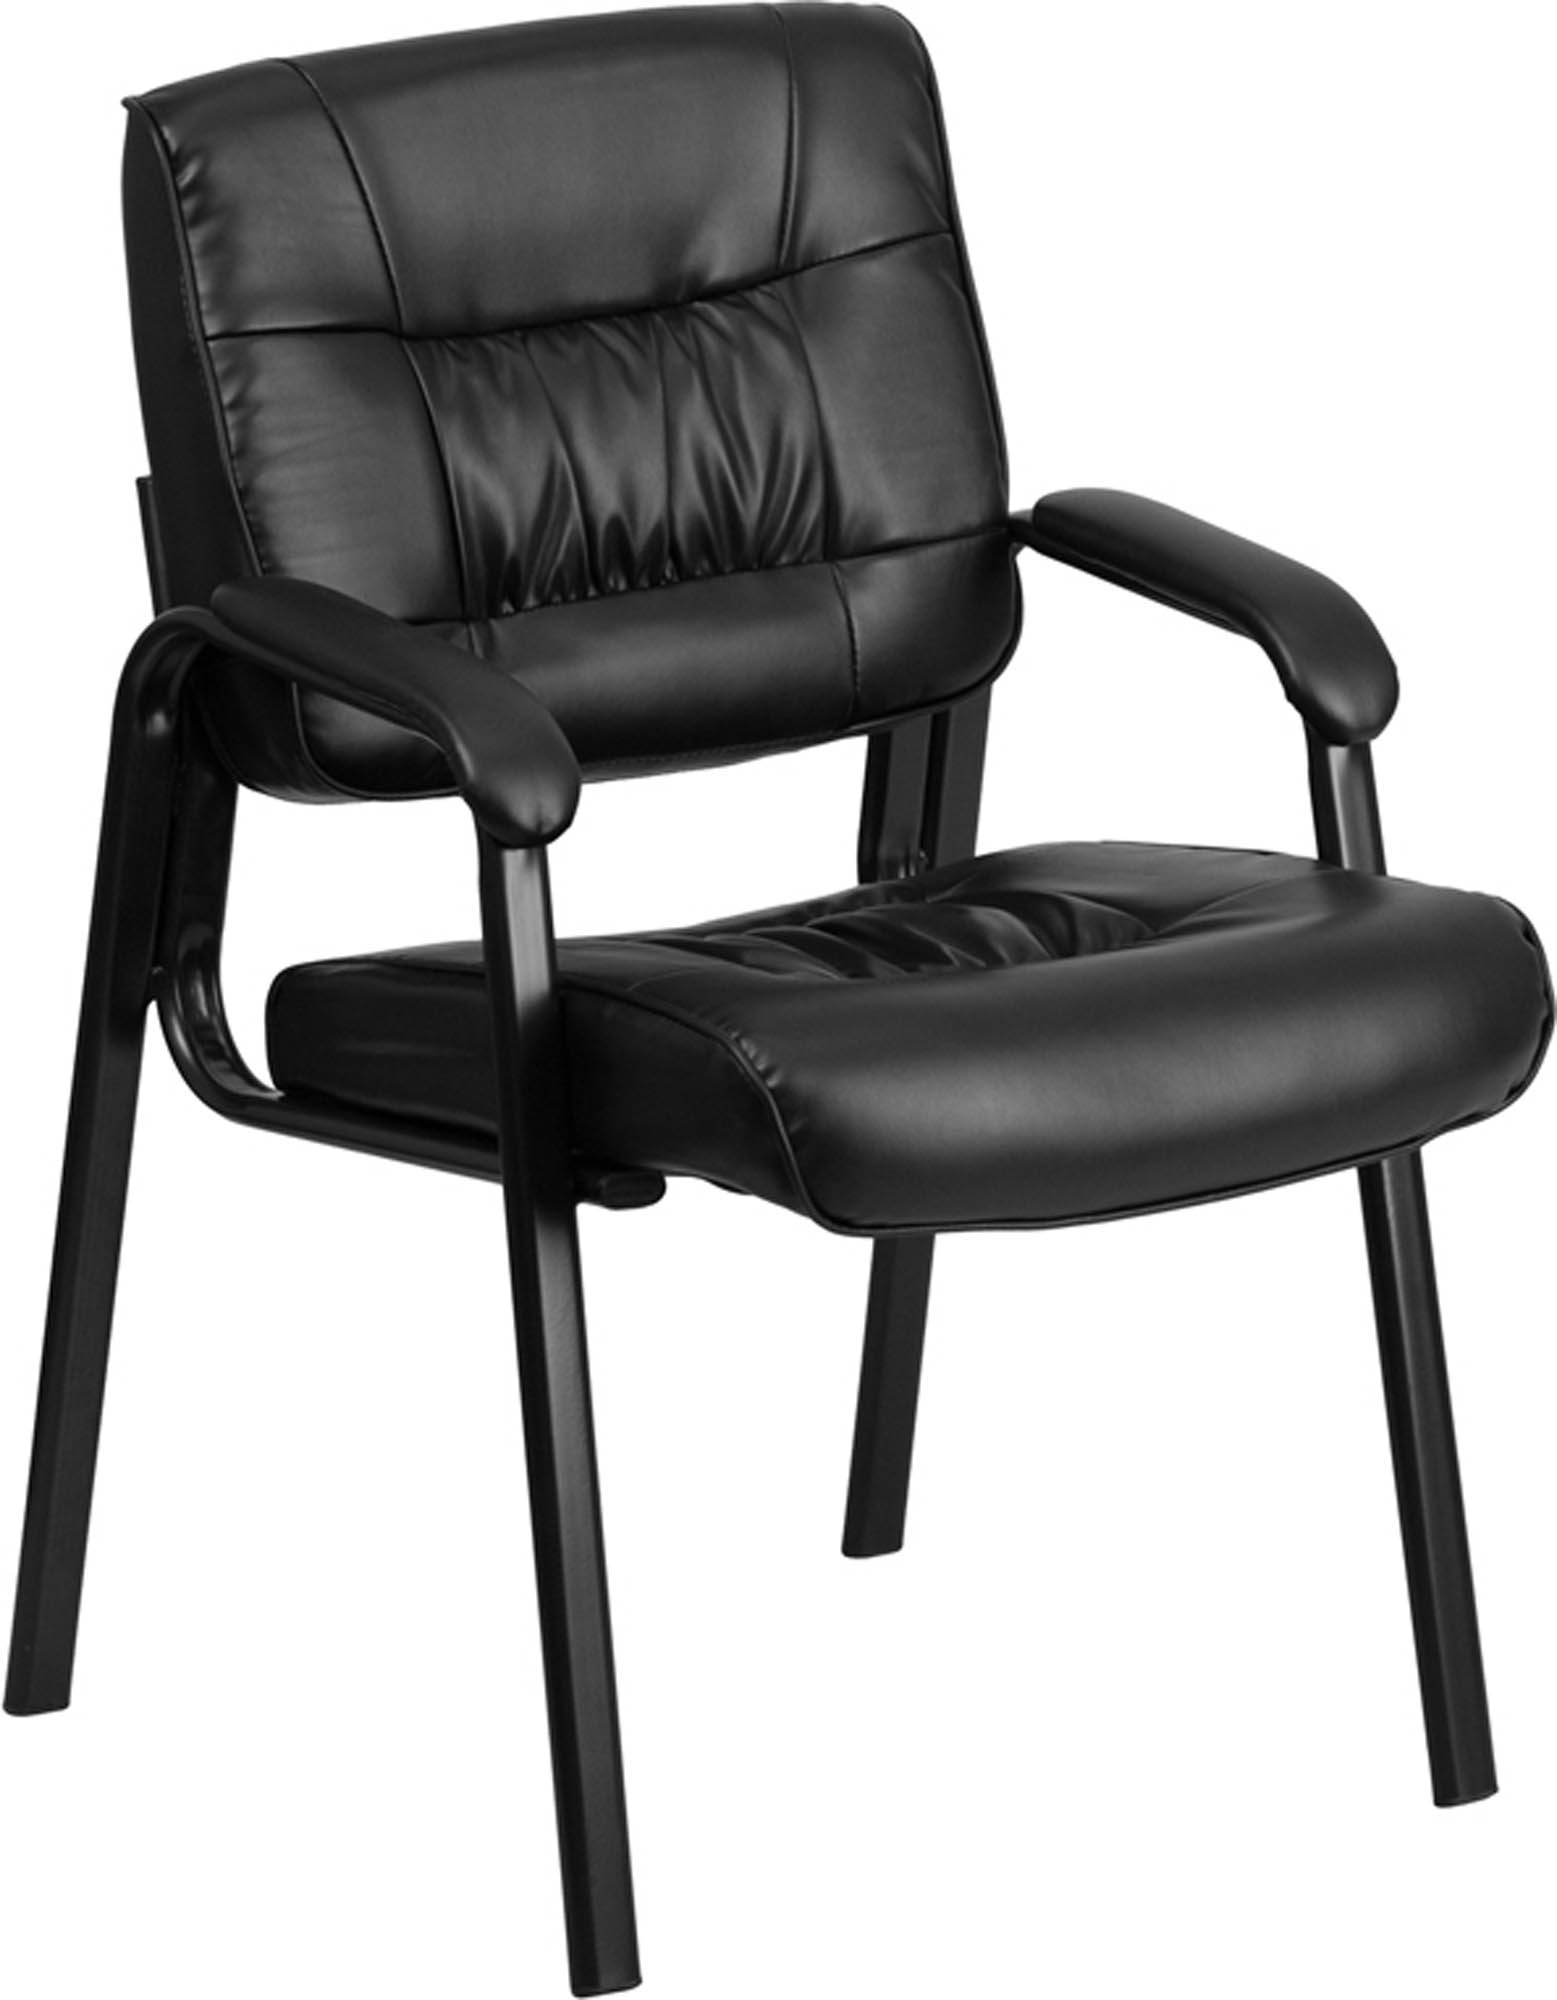 Offex Black Leather Guest Reception Waiting Room Chair with Black Frame Finish